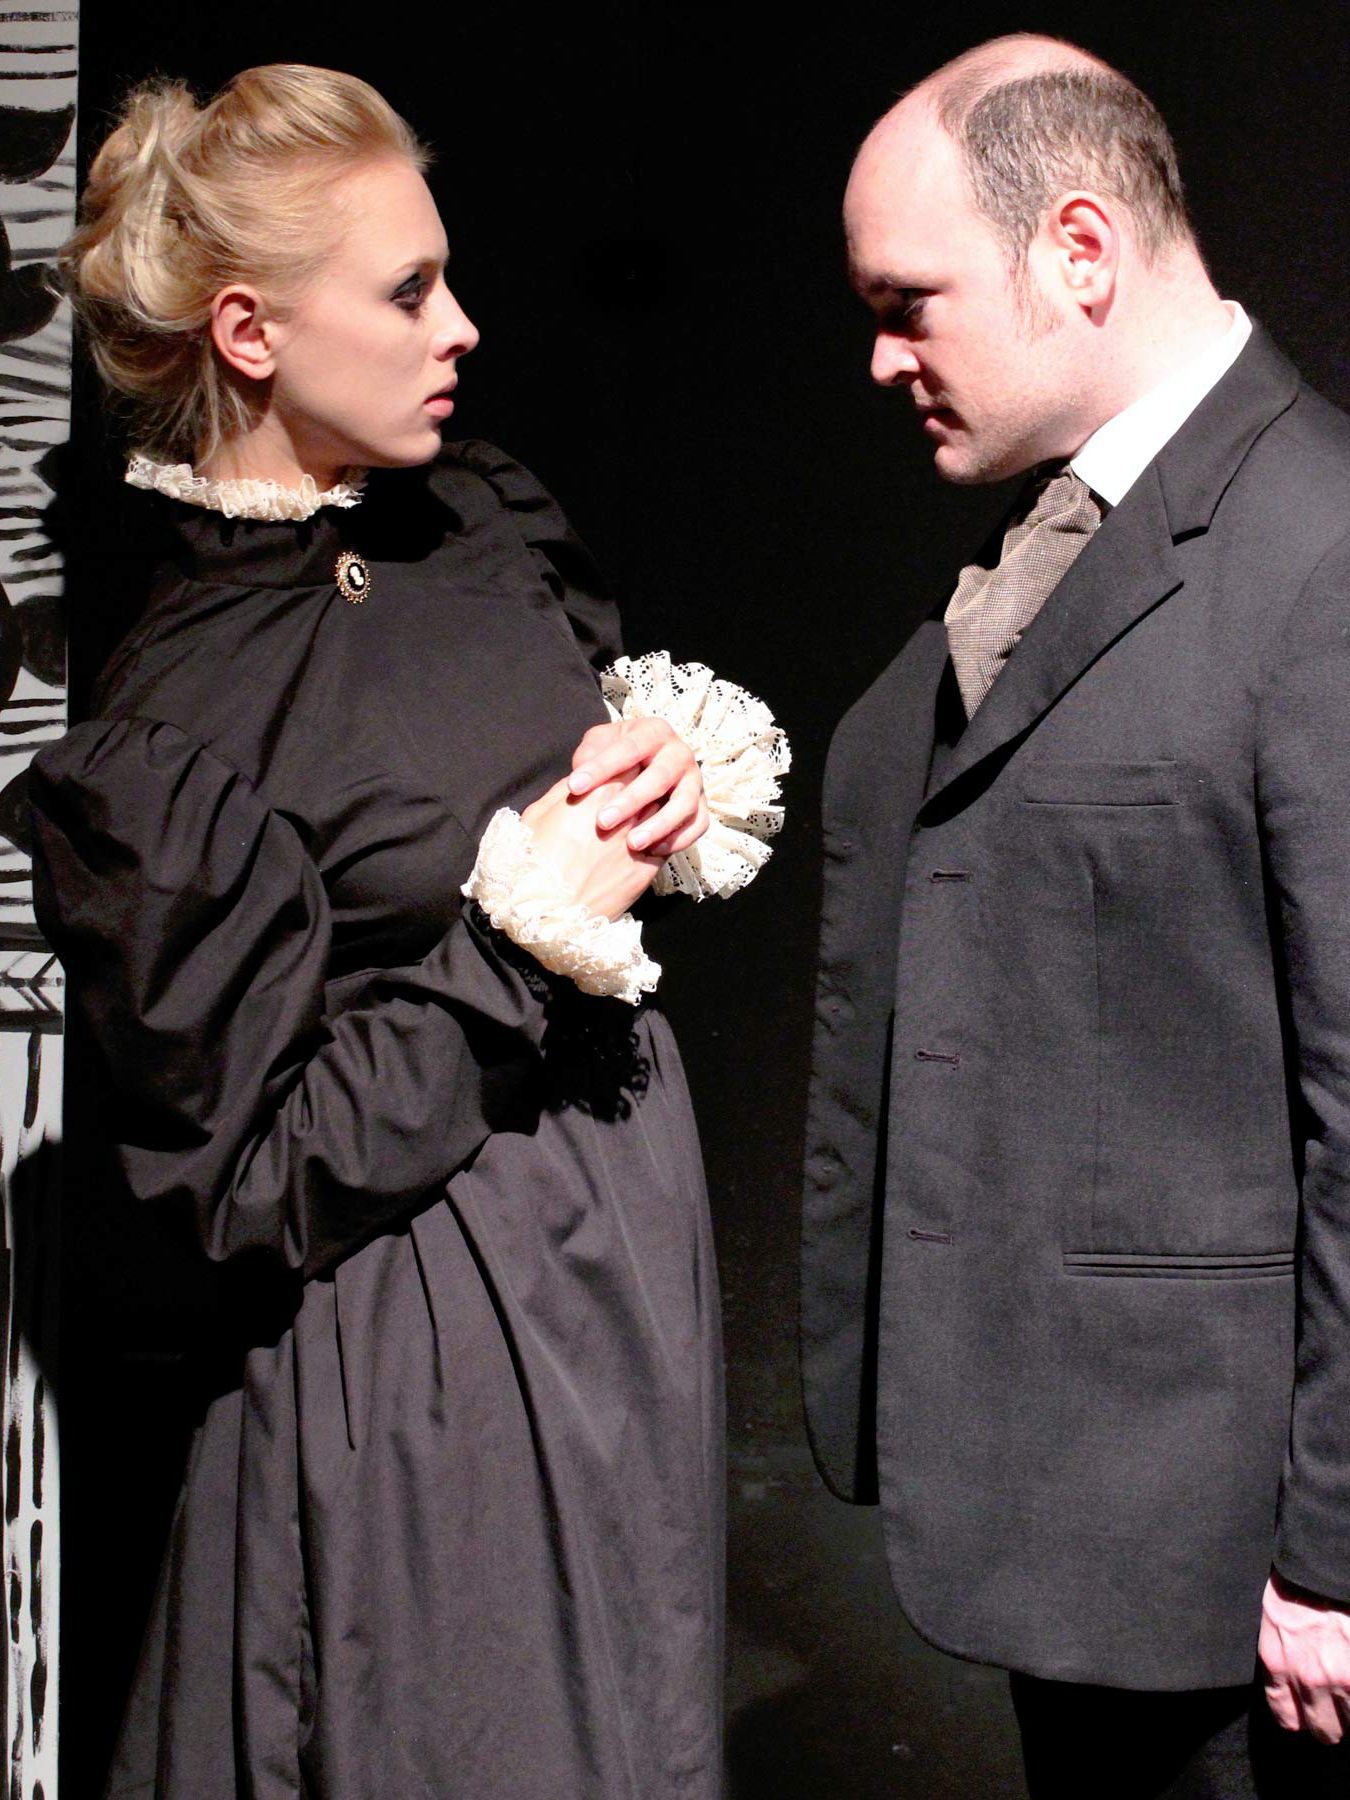 Amelia Gotham and Nich Kauffman in Henry James Turn of the Screw